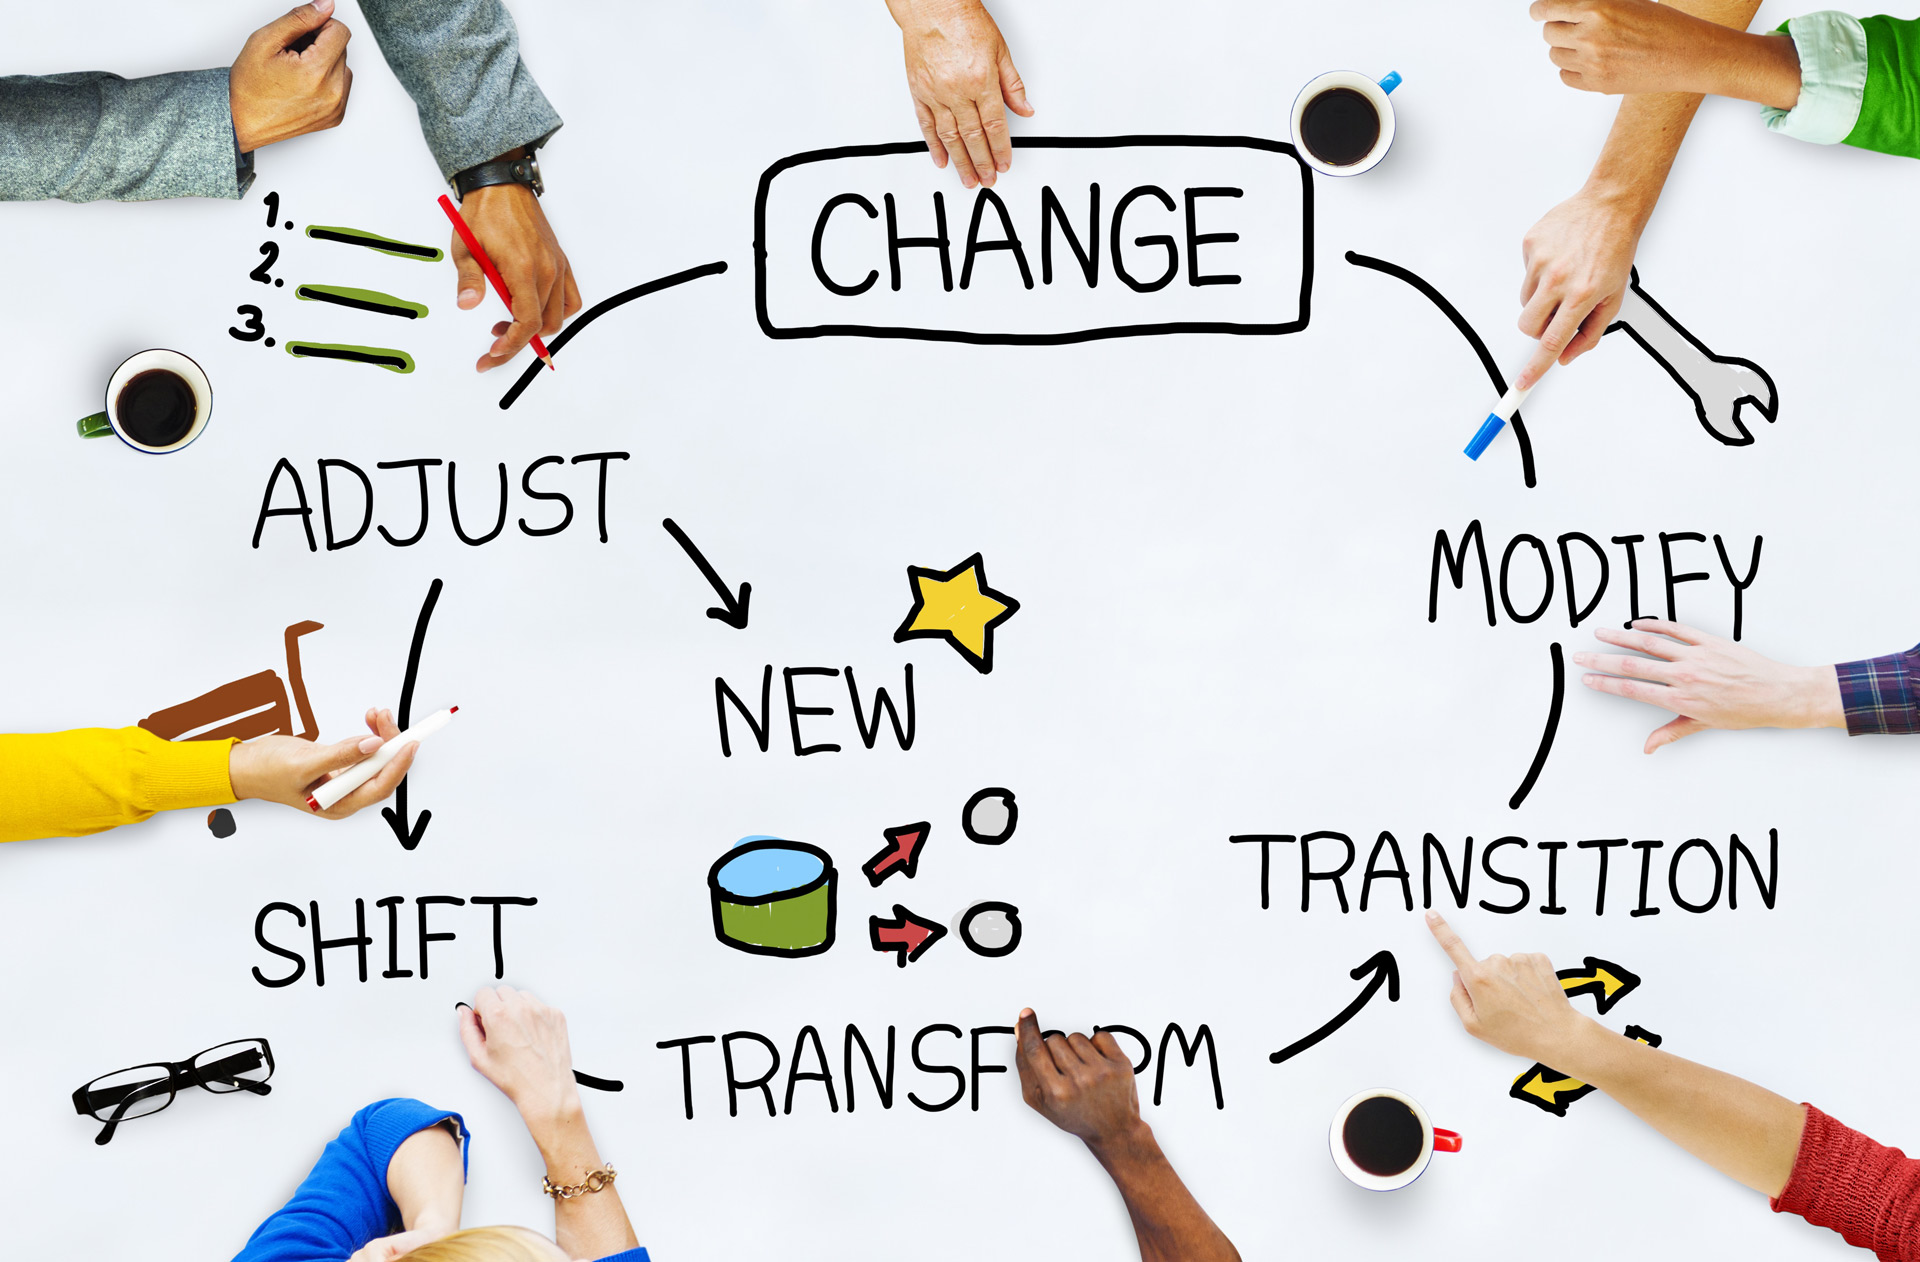 Infographic showing words change, modify, transition, transform, shift, adjust in a cycle.